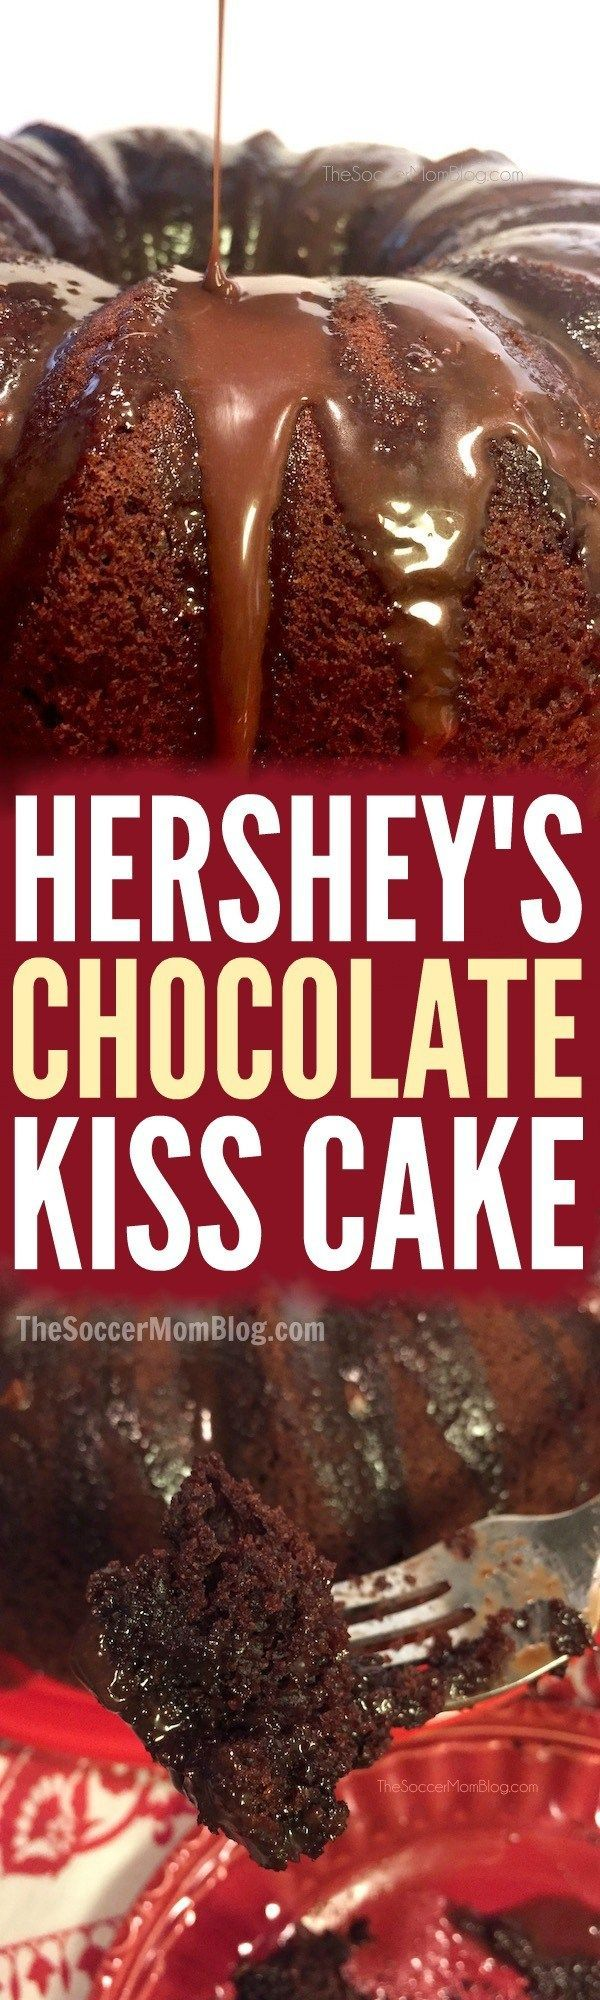 The perfect chocolate bundt cake! Hershey's Kiss Cake is packed with chocolate and coated in a rich ganache.